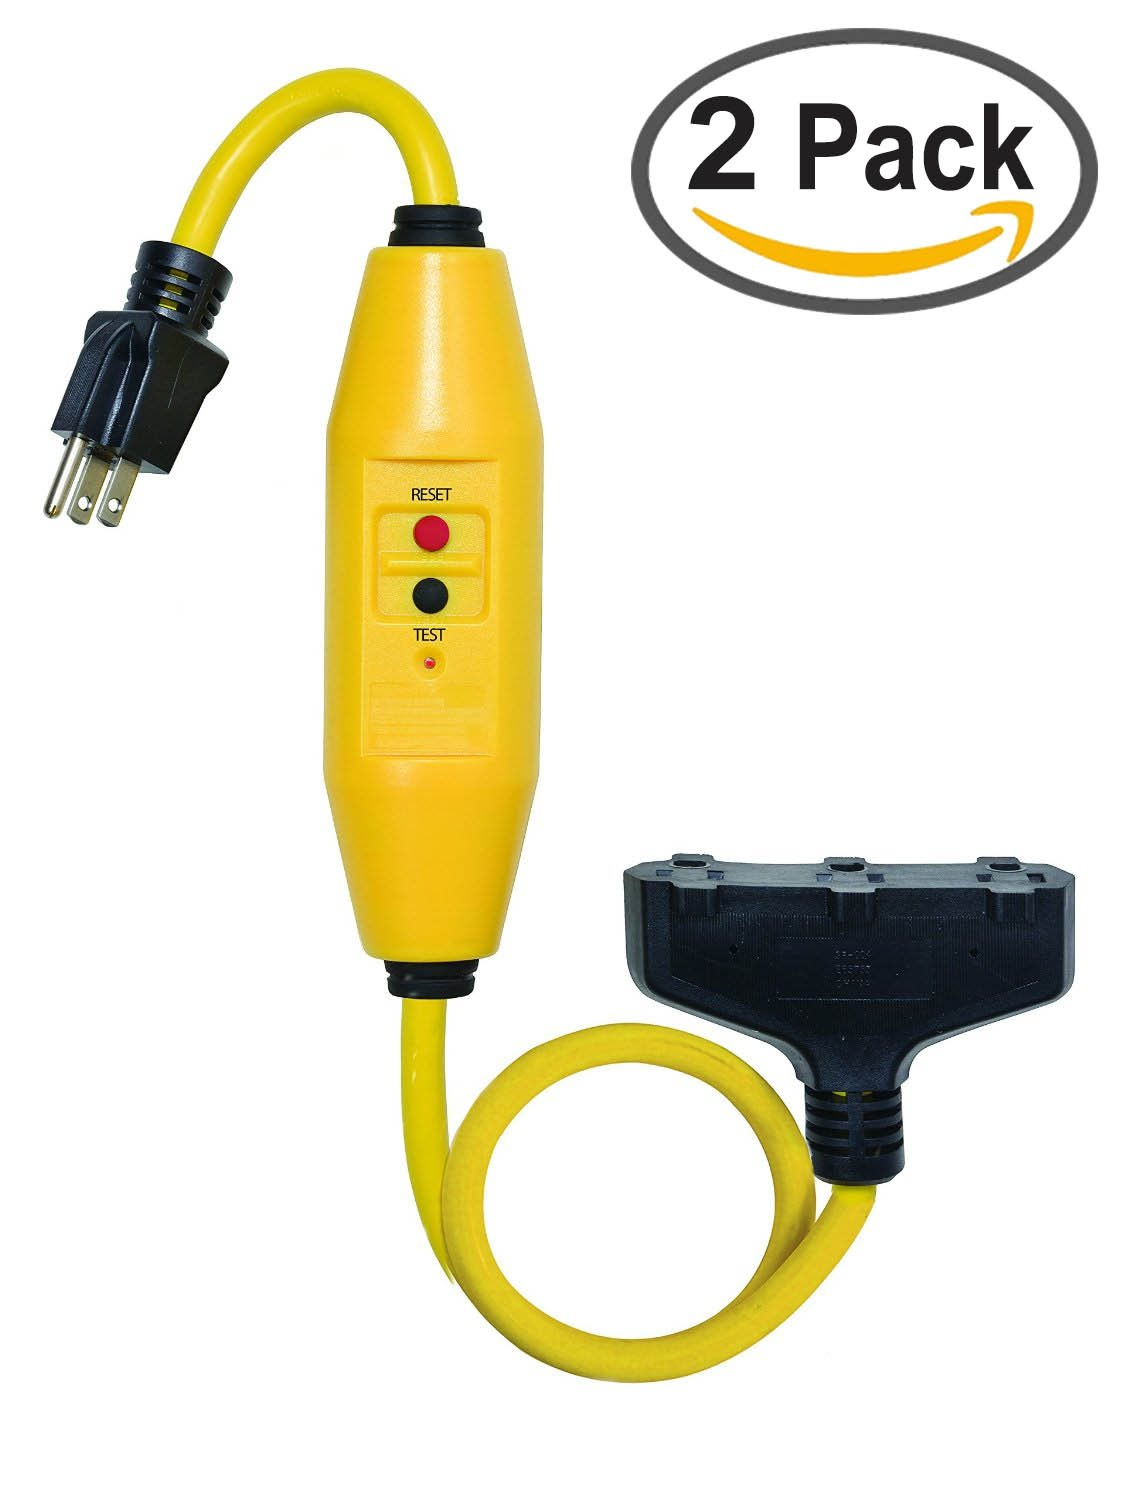 Tower Manufacturing 30338024 2 Length 15 amp In-Line GFCI And Triple Tap Cord Set With Auto Reset